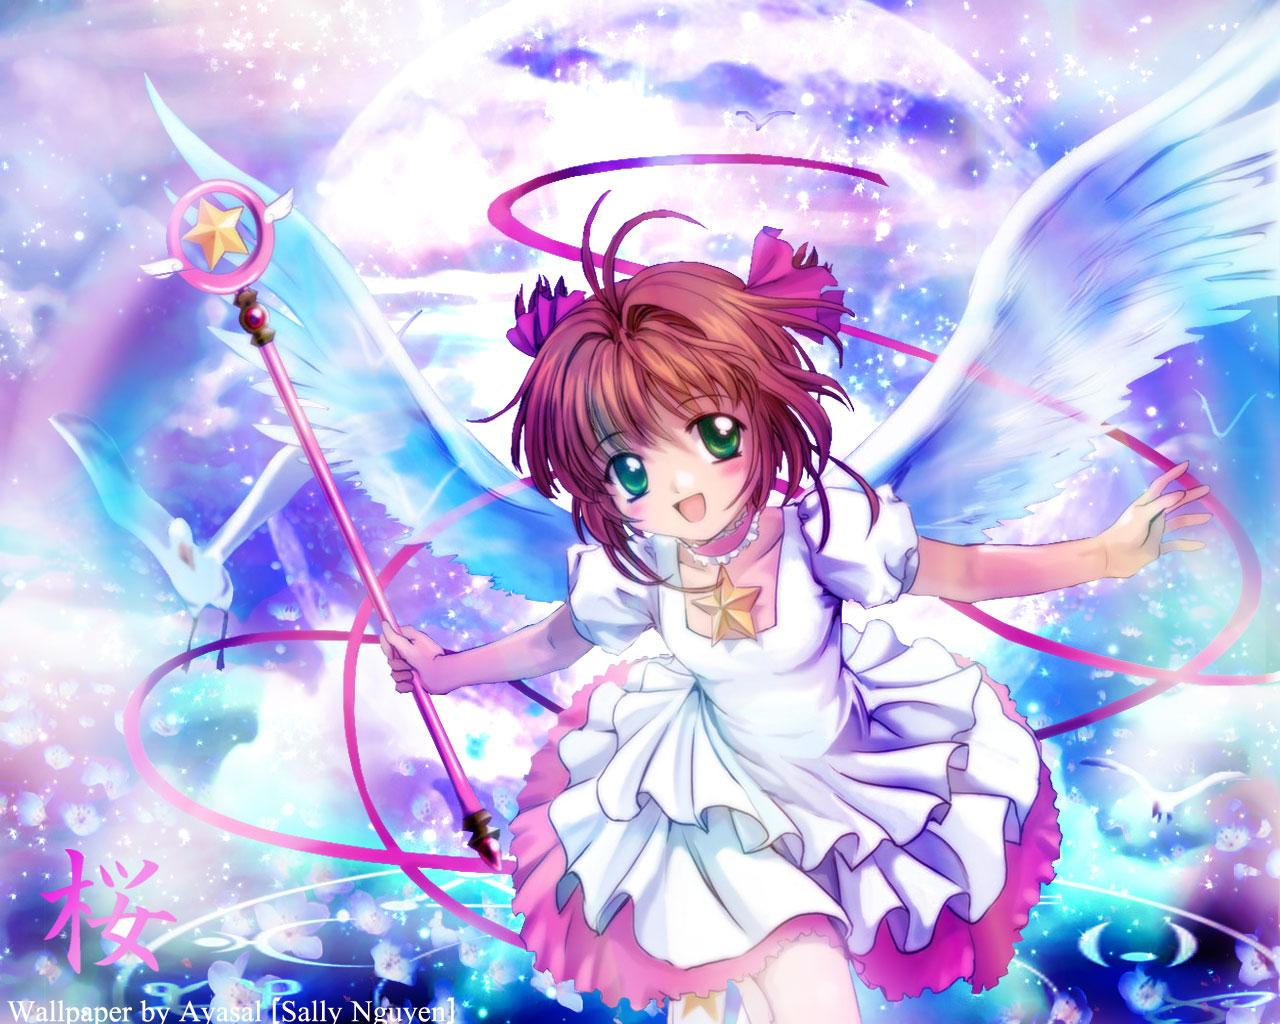 Sakura Card Captor wallpaper 11